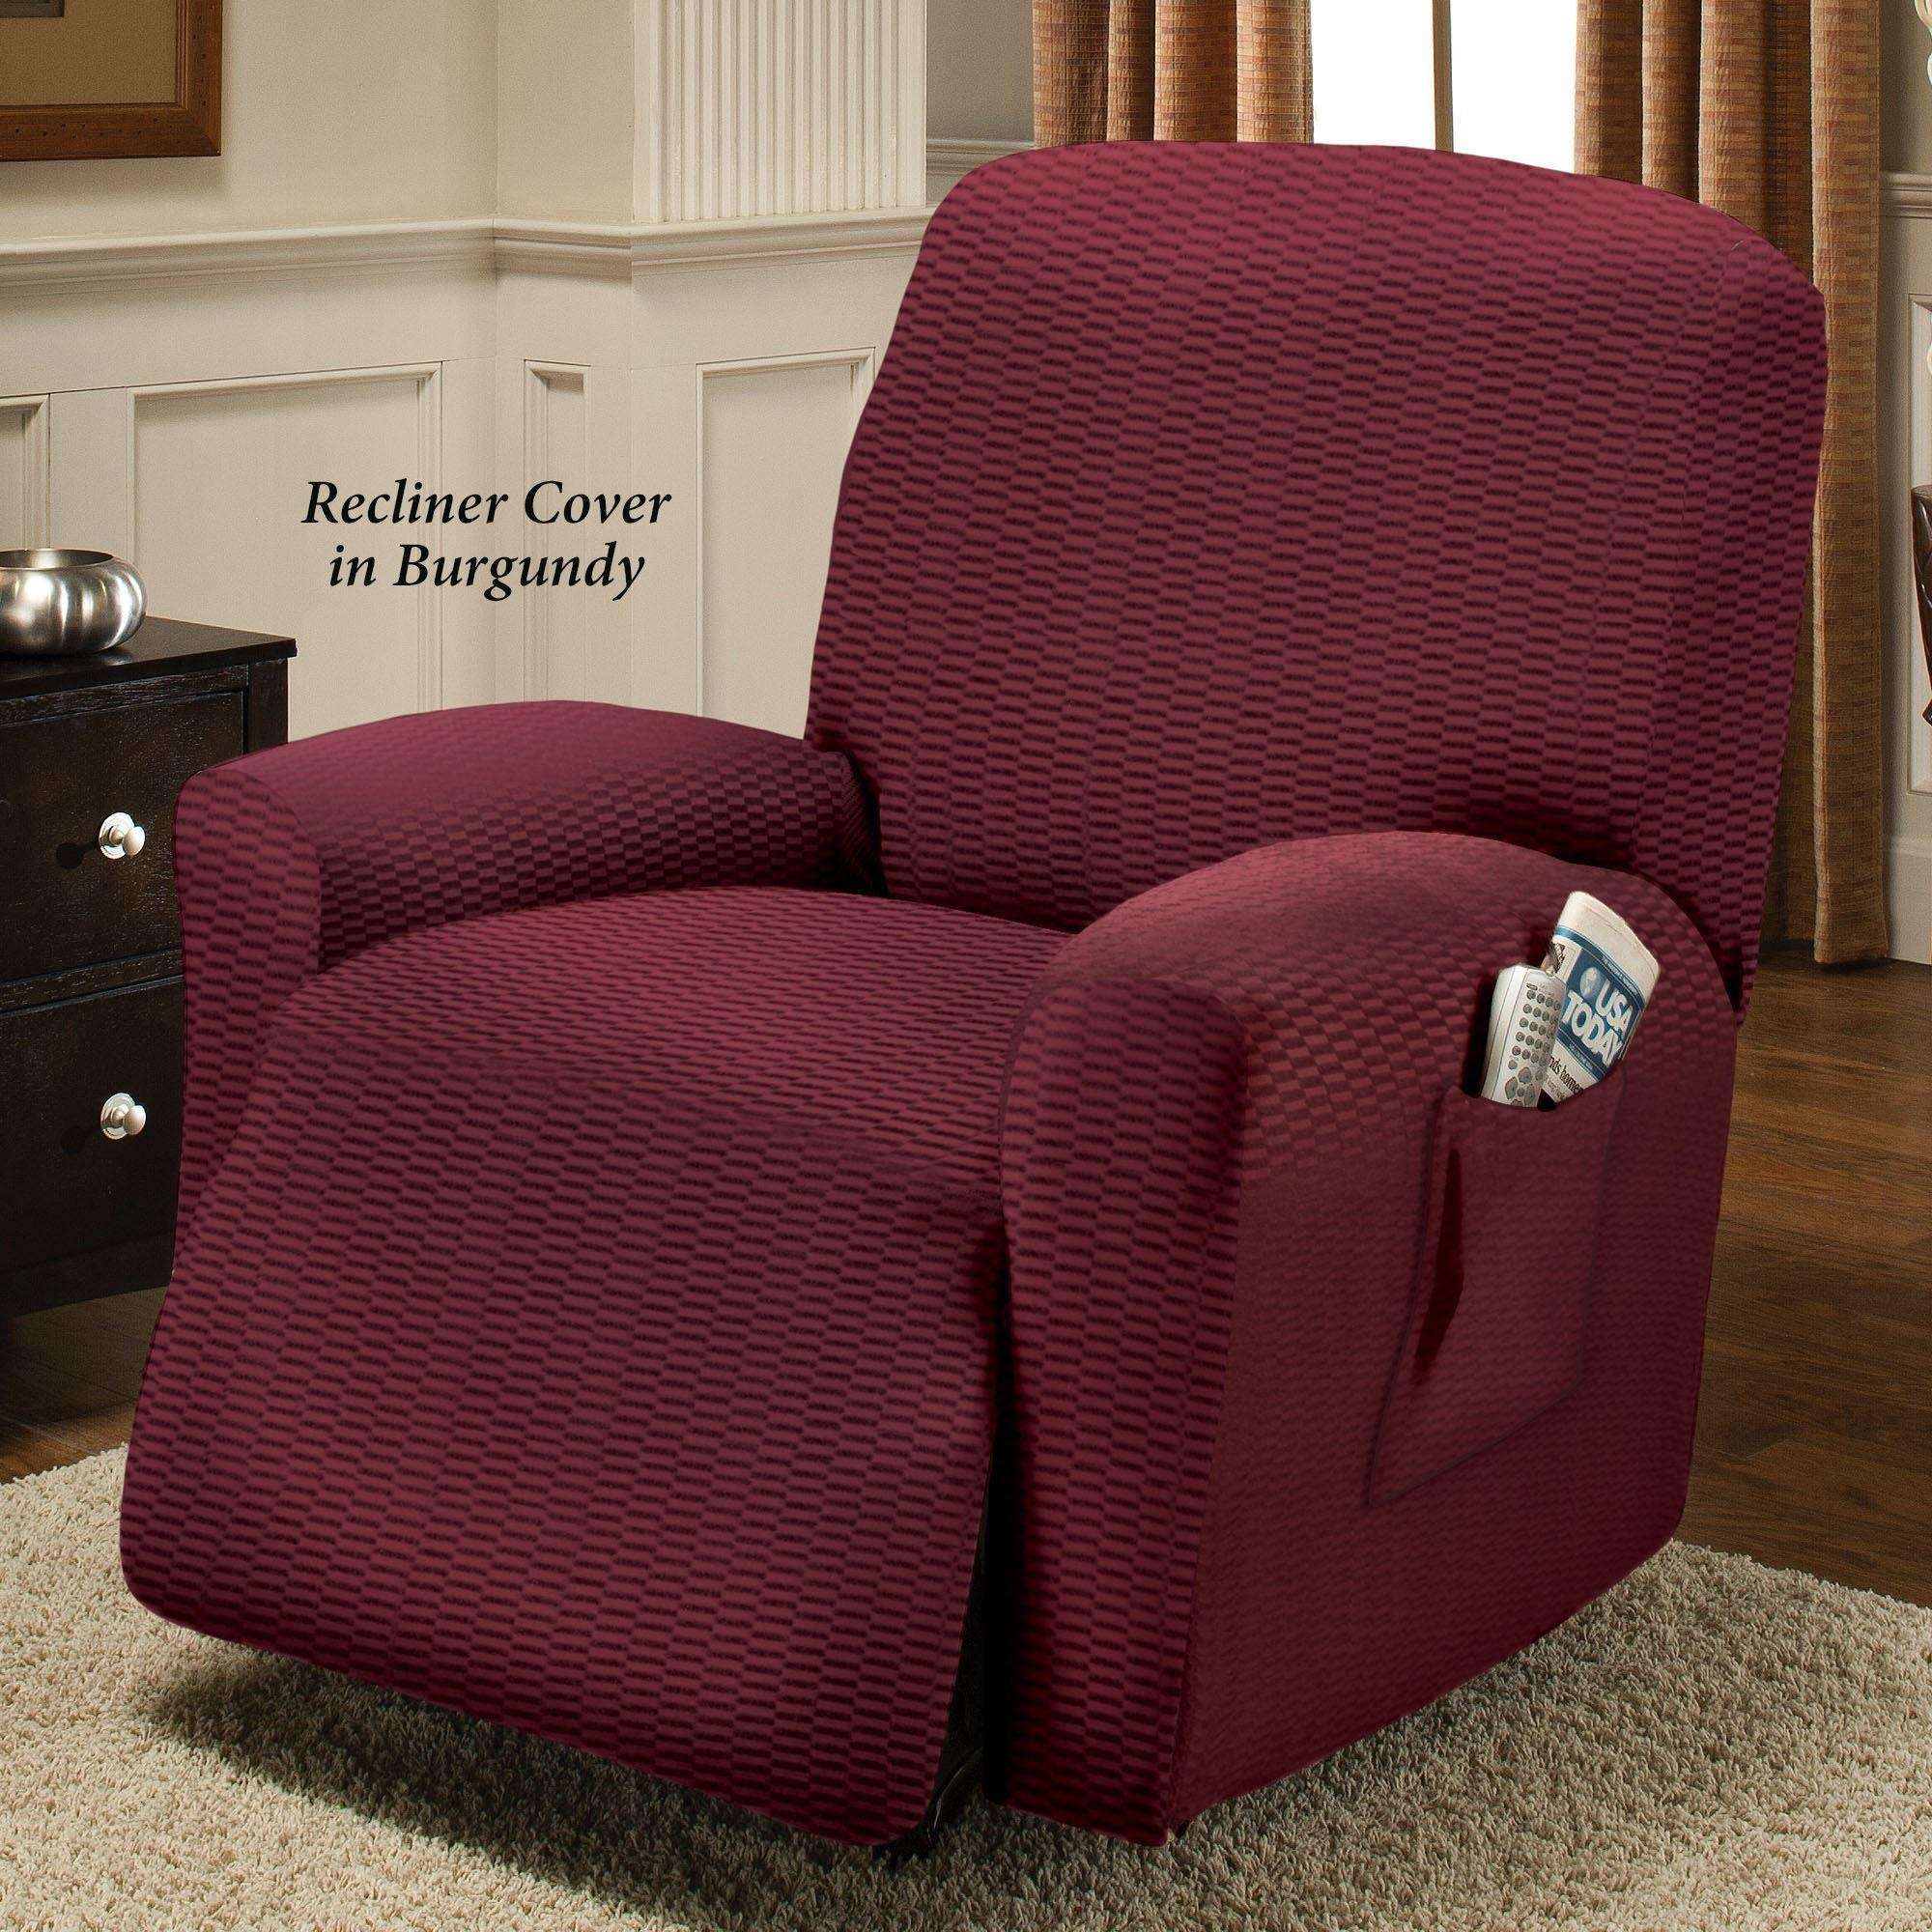 Raise The Bar Stretch Recliner Slipcovers Pertaining To Stretch Covers For Recliners (Image 14 of 20)